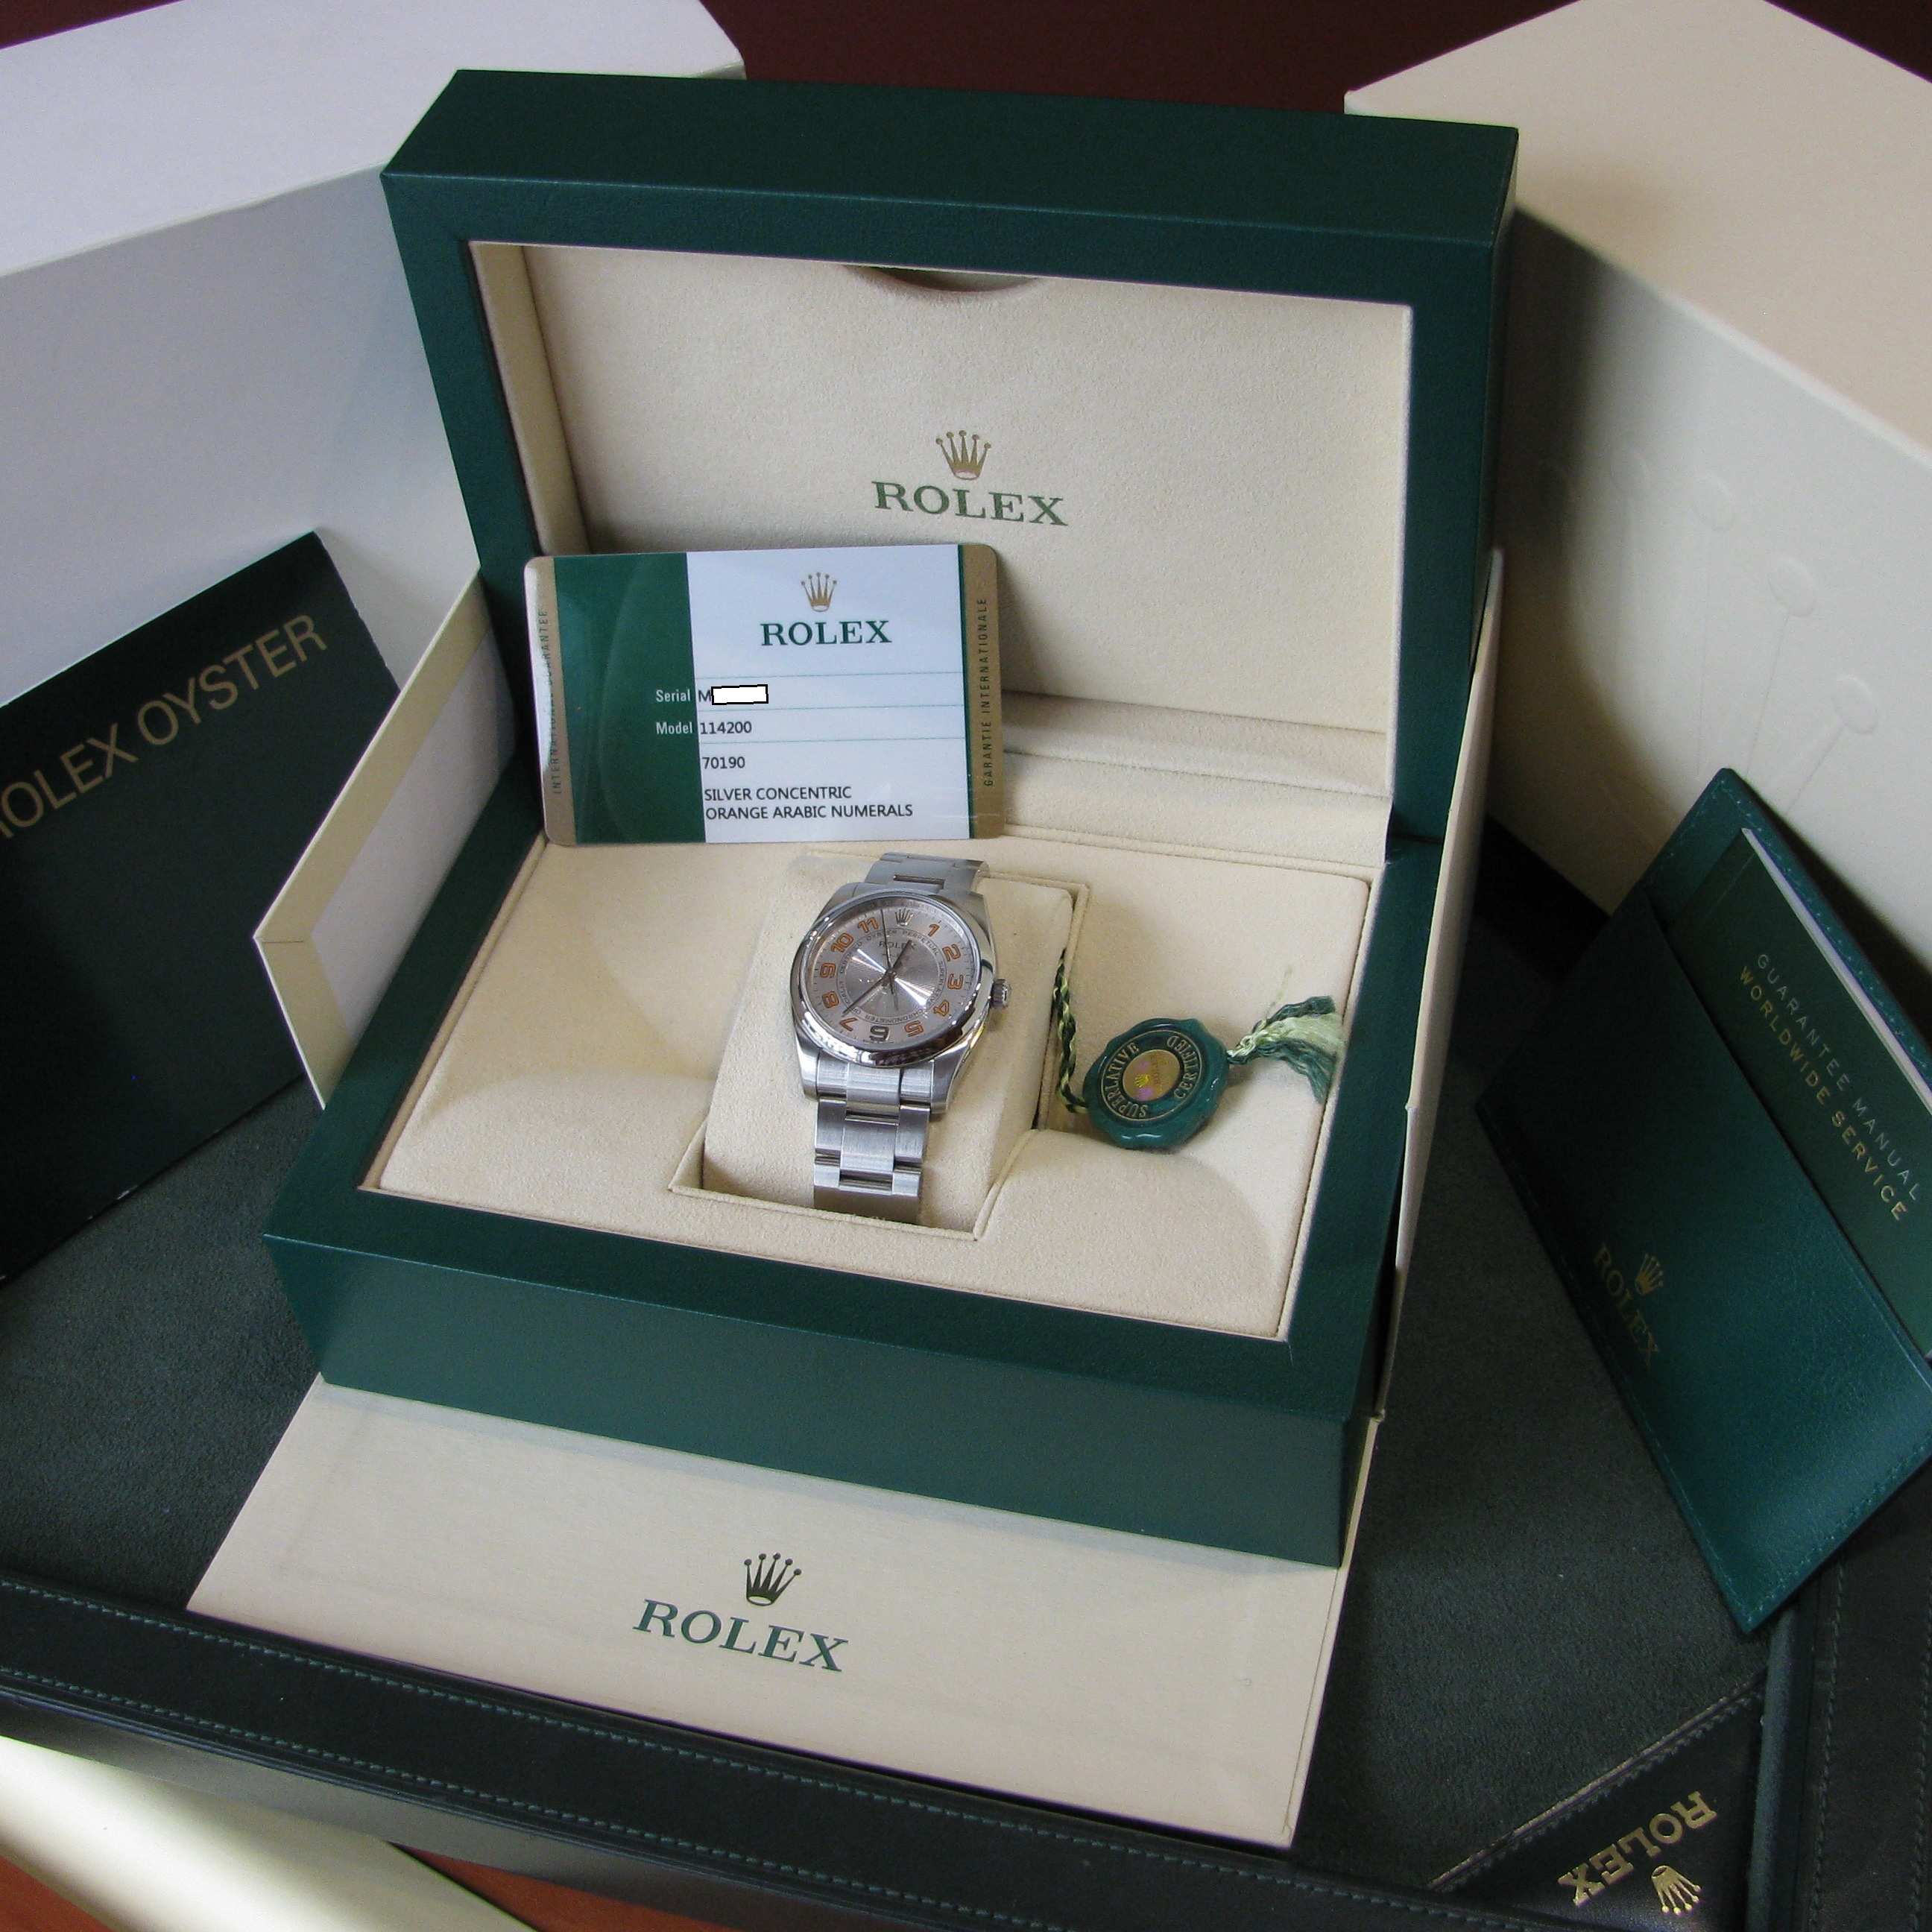 Rolex Oyster Perpetual Air-king Precision – 114200 – Silver